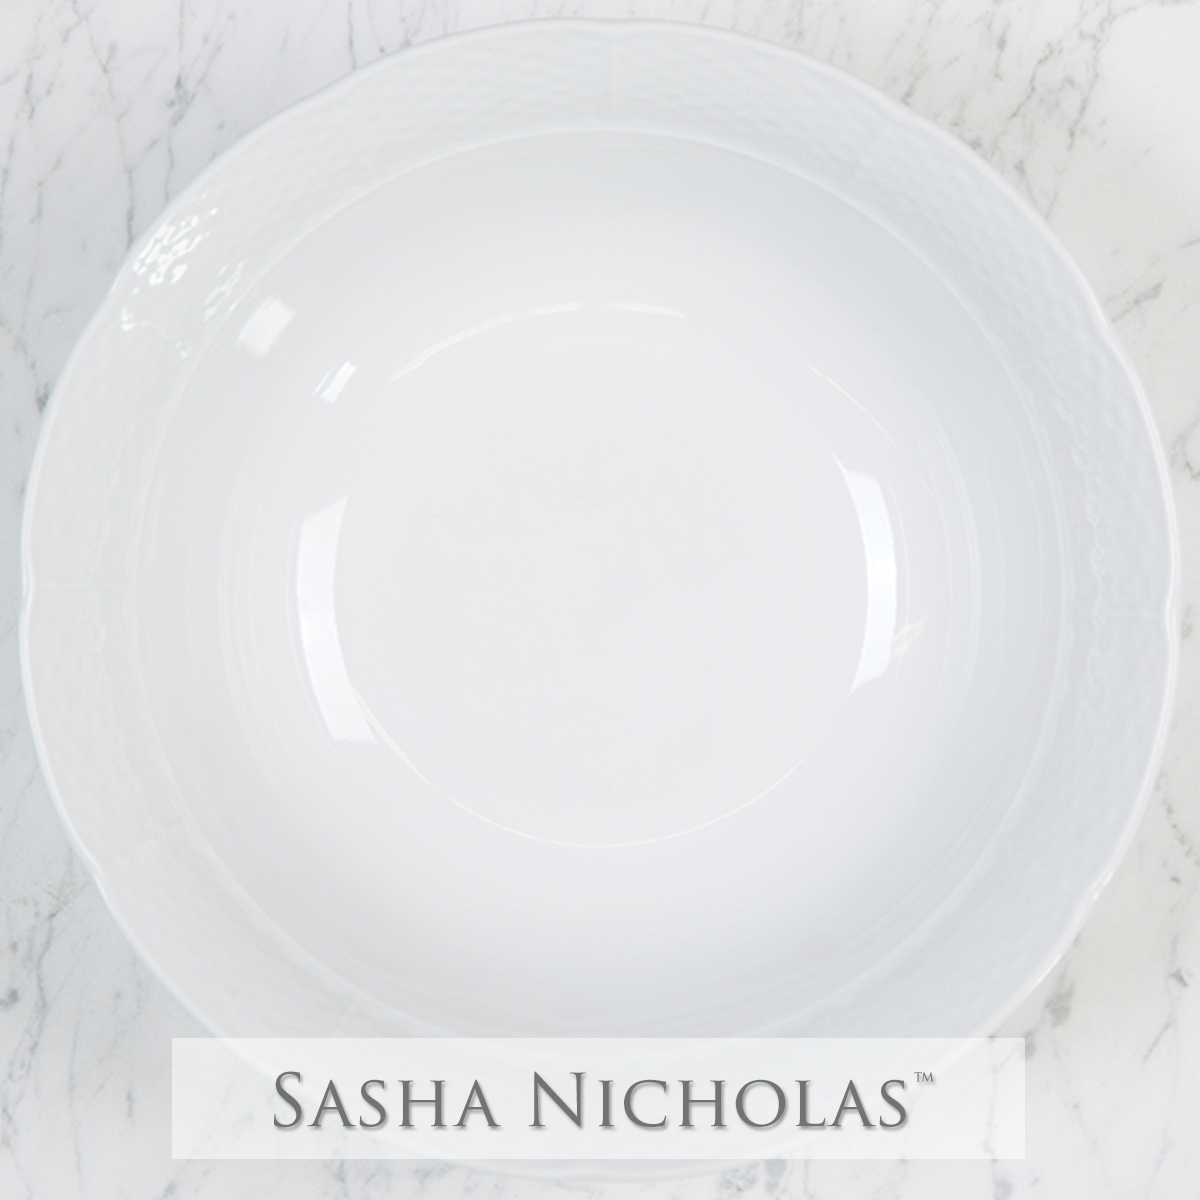 A beautiful addition to your dinnerware collection and to adorn your tablescapes with. It makes the perfect gift for your wedding registry with the included inscription on bottom. Choose from their signature font styles or use a custom monogram or crest of your choice!   Sasha Nicholas's white porcelain large serving bowl